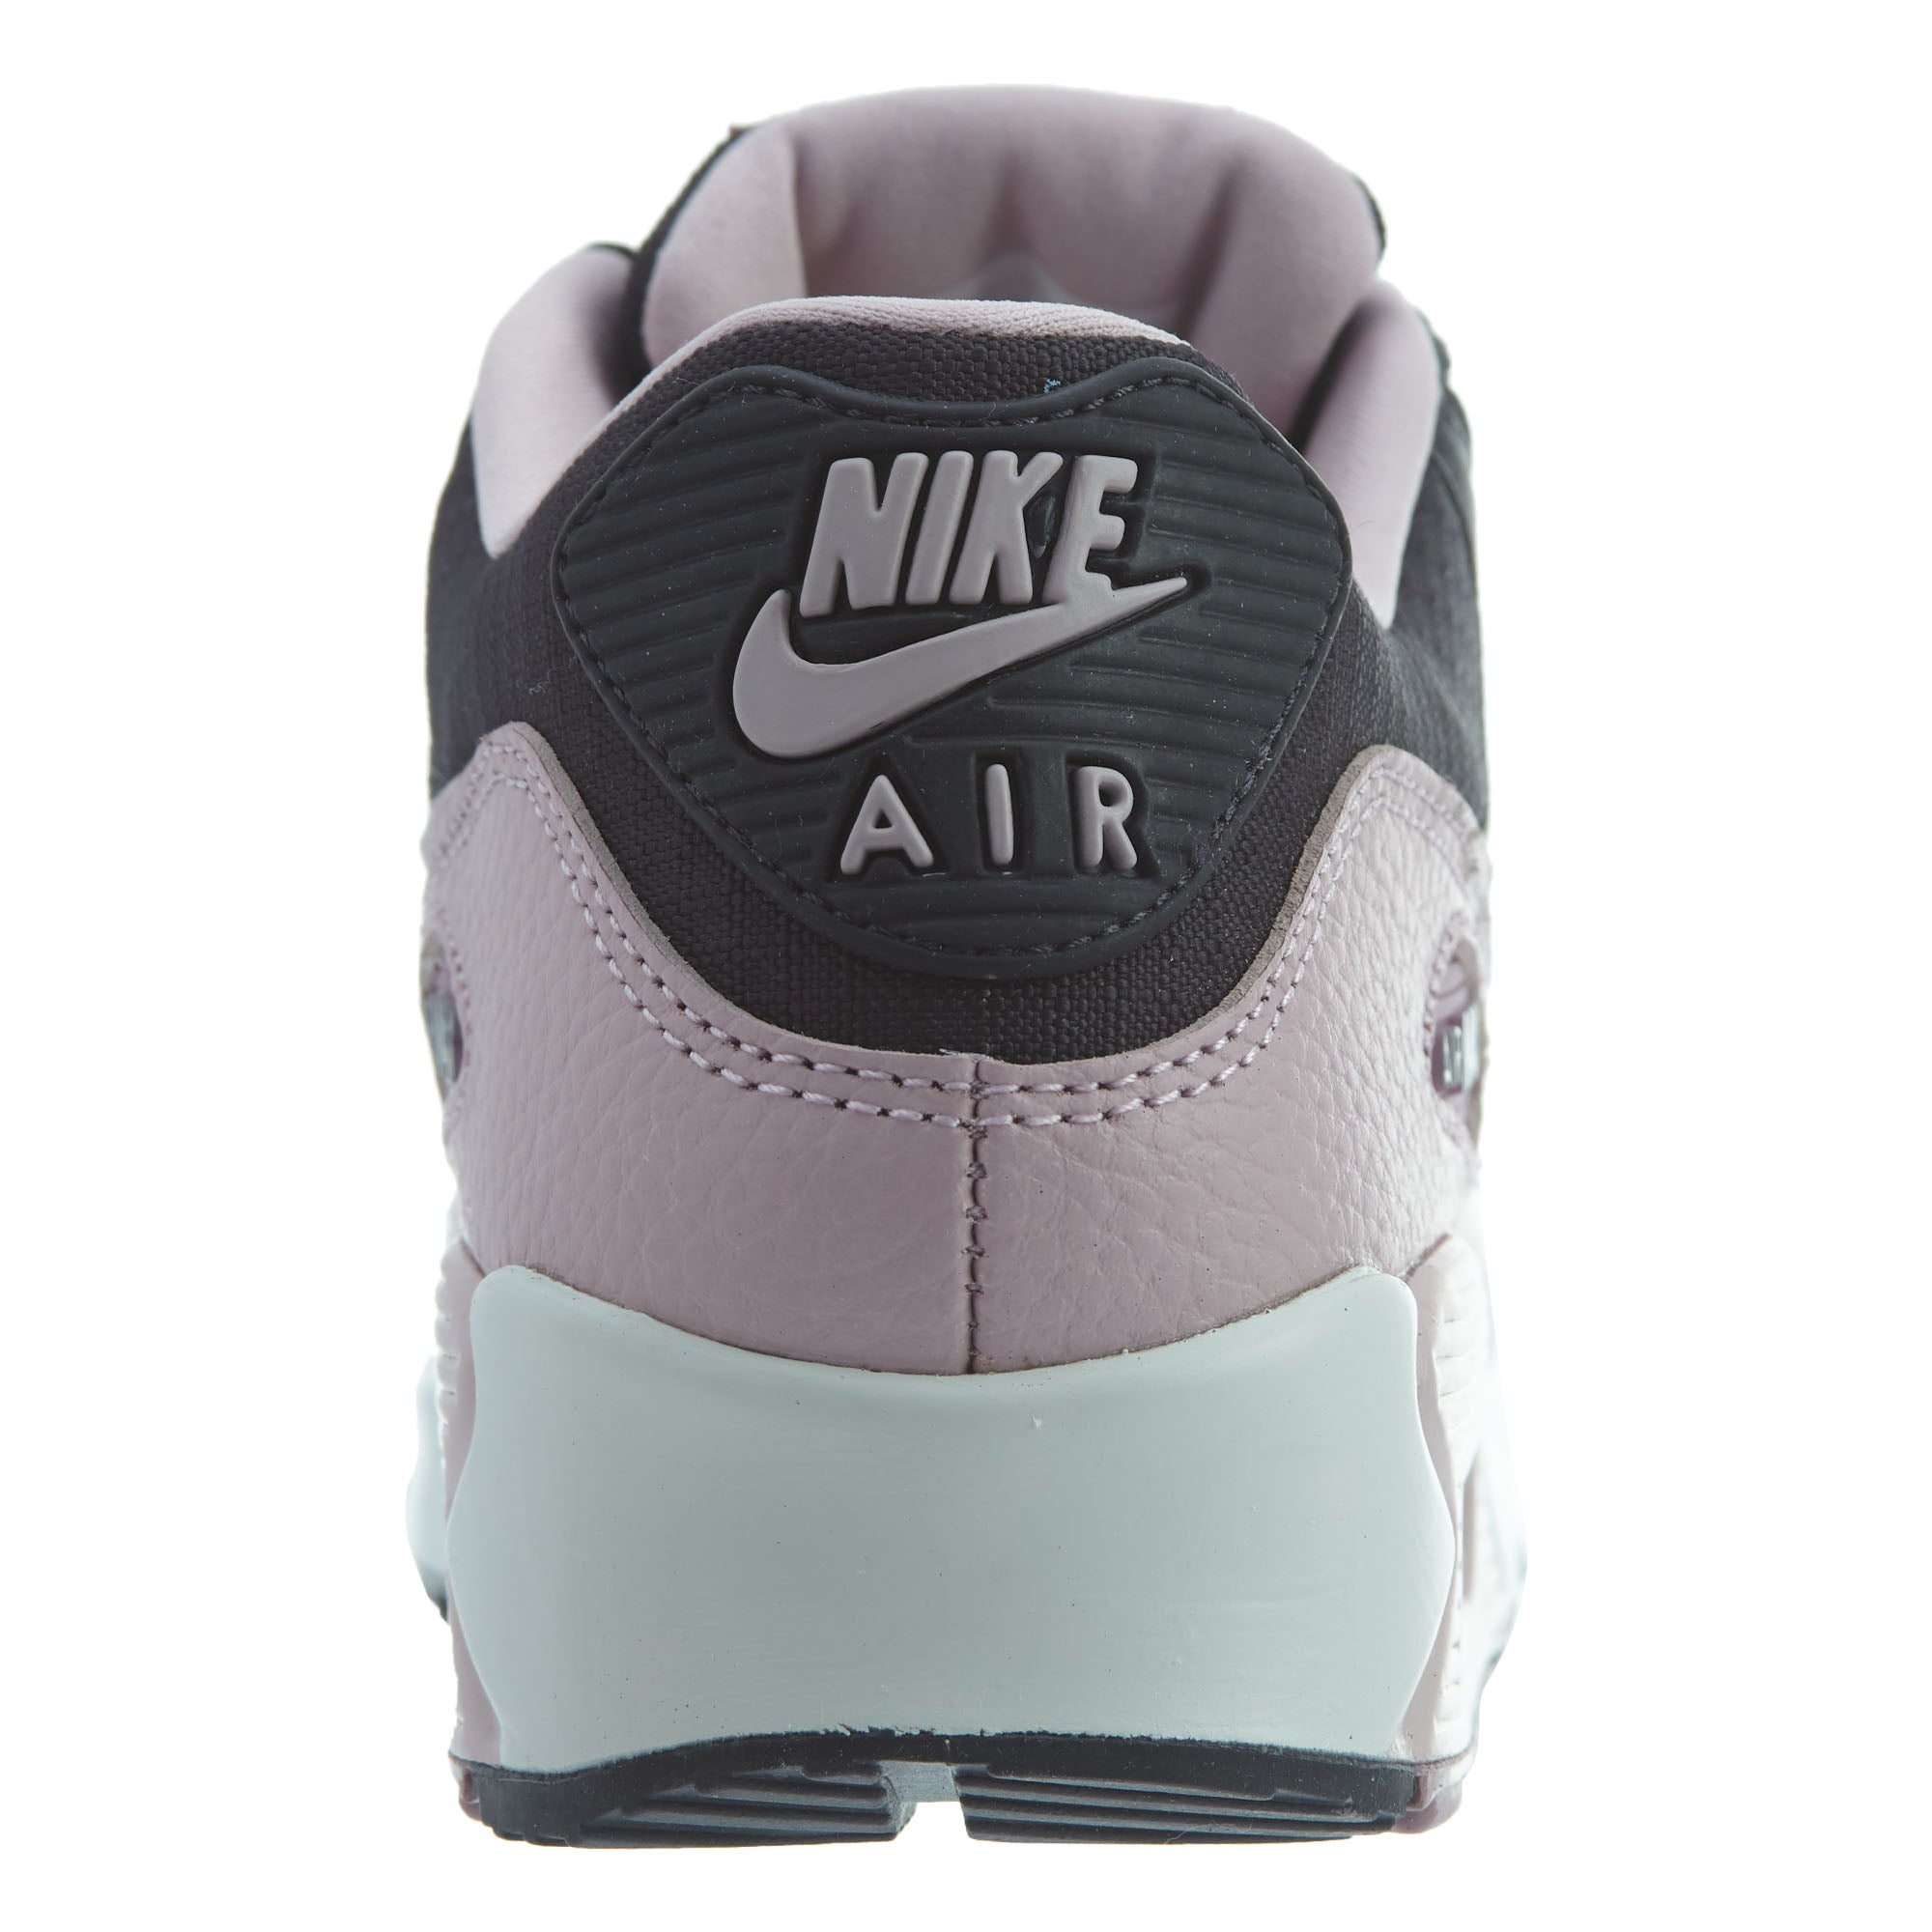 758d673e84 Nike Air Max 90 Womens Style : 325213-059. NIKE / Athletic Shoes & Sneakers